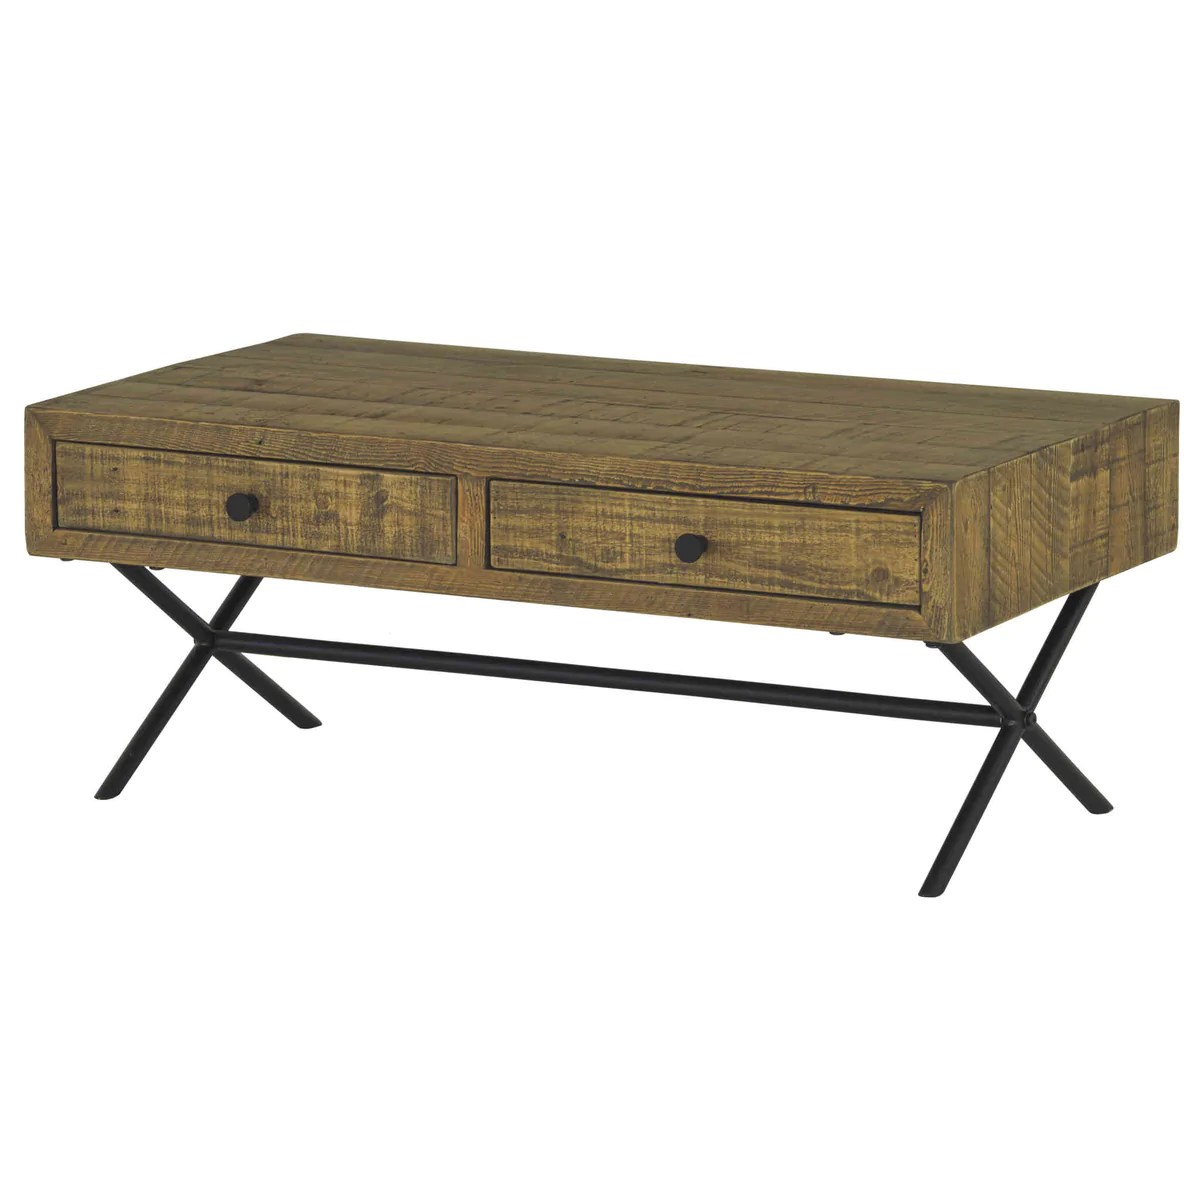 Reclaimed Wood Coffee Table With Drawers Rechic Ltd